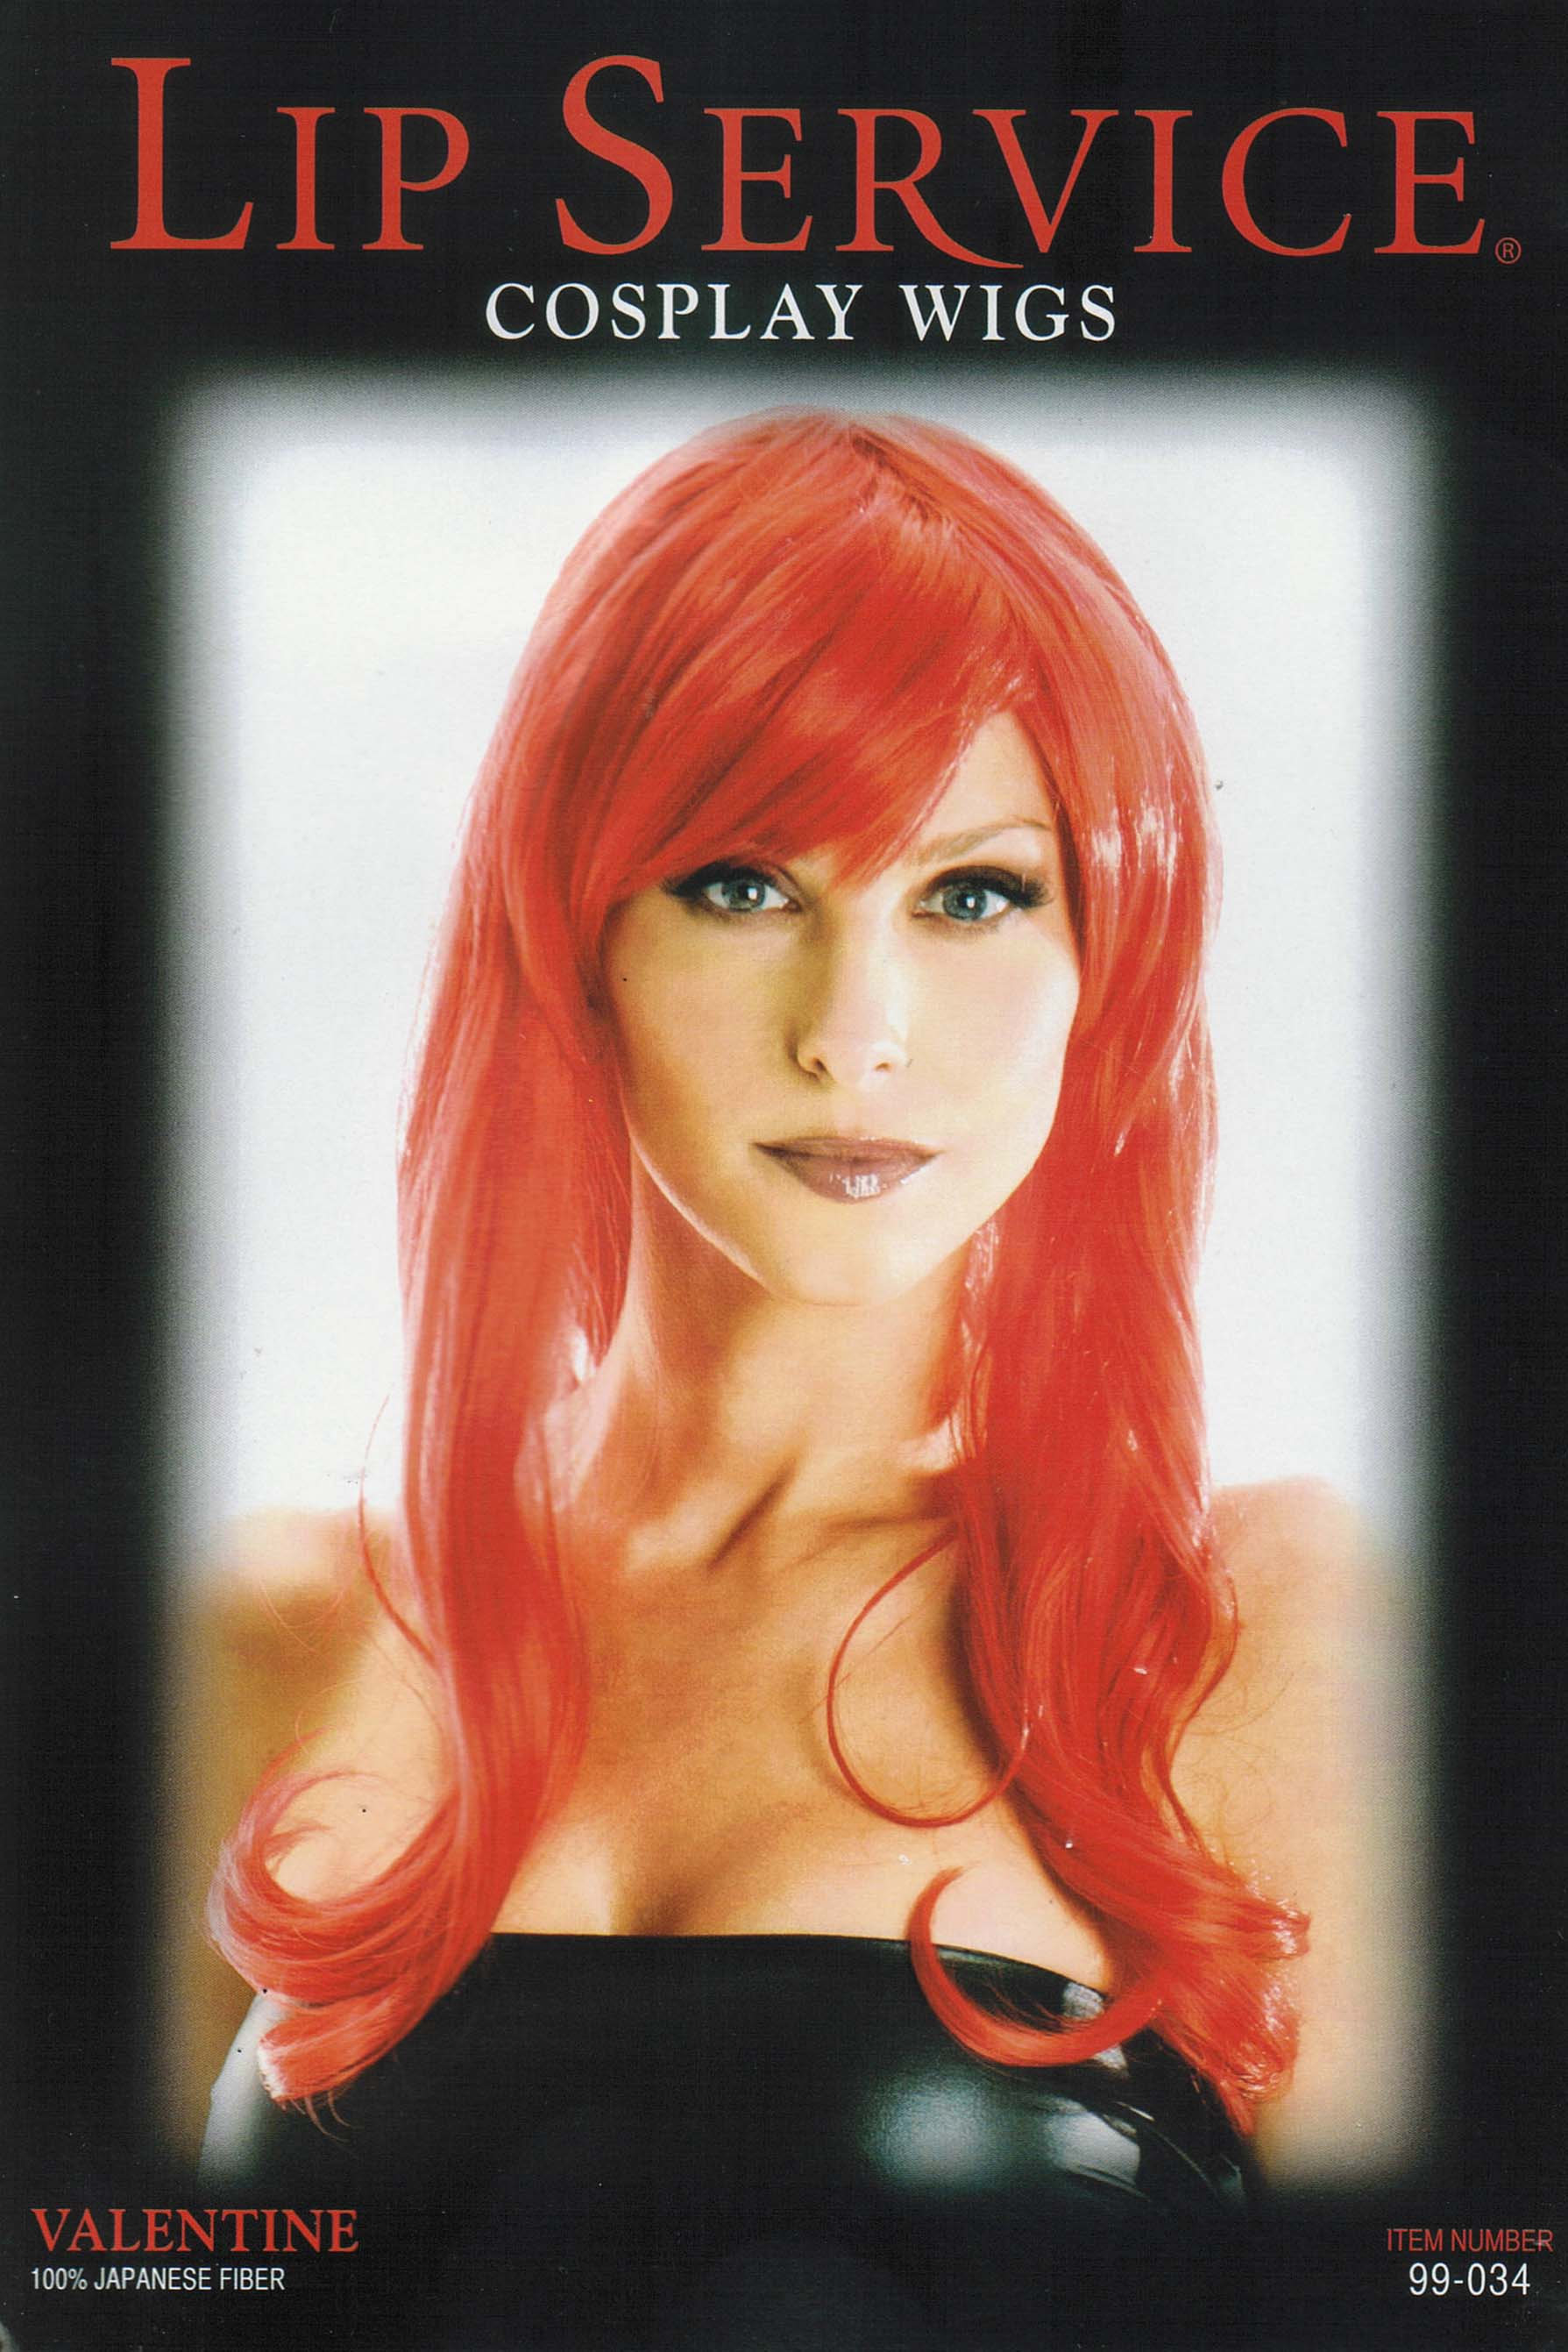 Lip Service Cosplay Wig - Valentine-Accessories-Lip Service